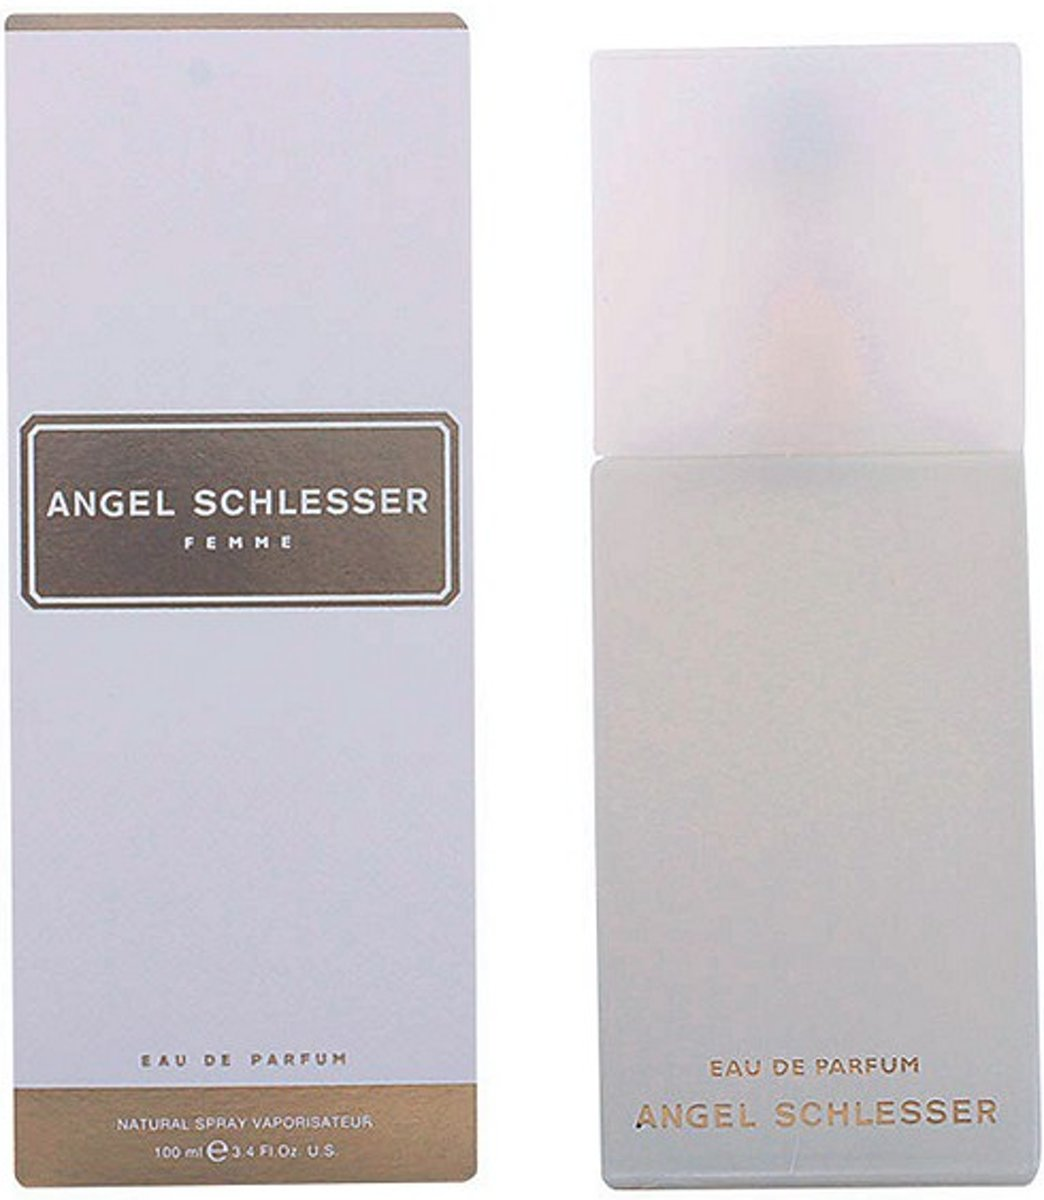 Angel Schlesser ANGEL SCHLESSER eau de parfum spray 50 ml